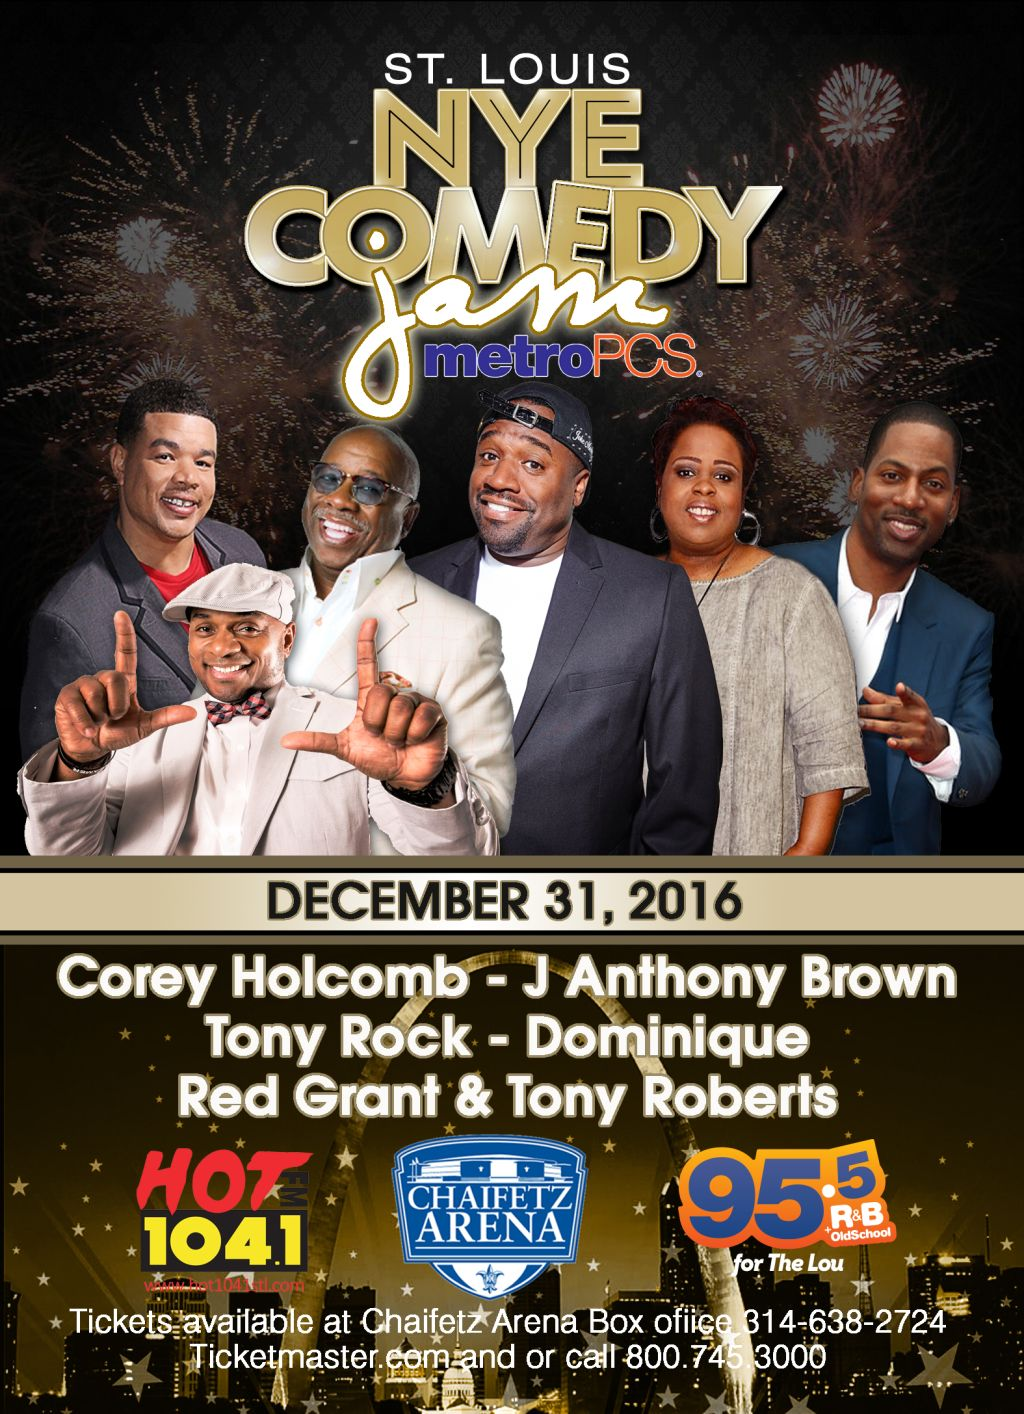 NYE Comedy Jam STL Corrected